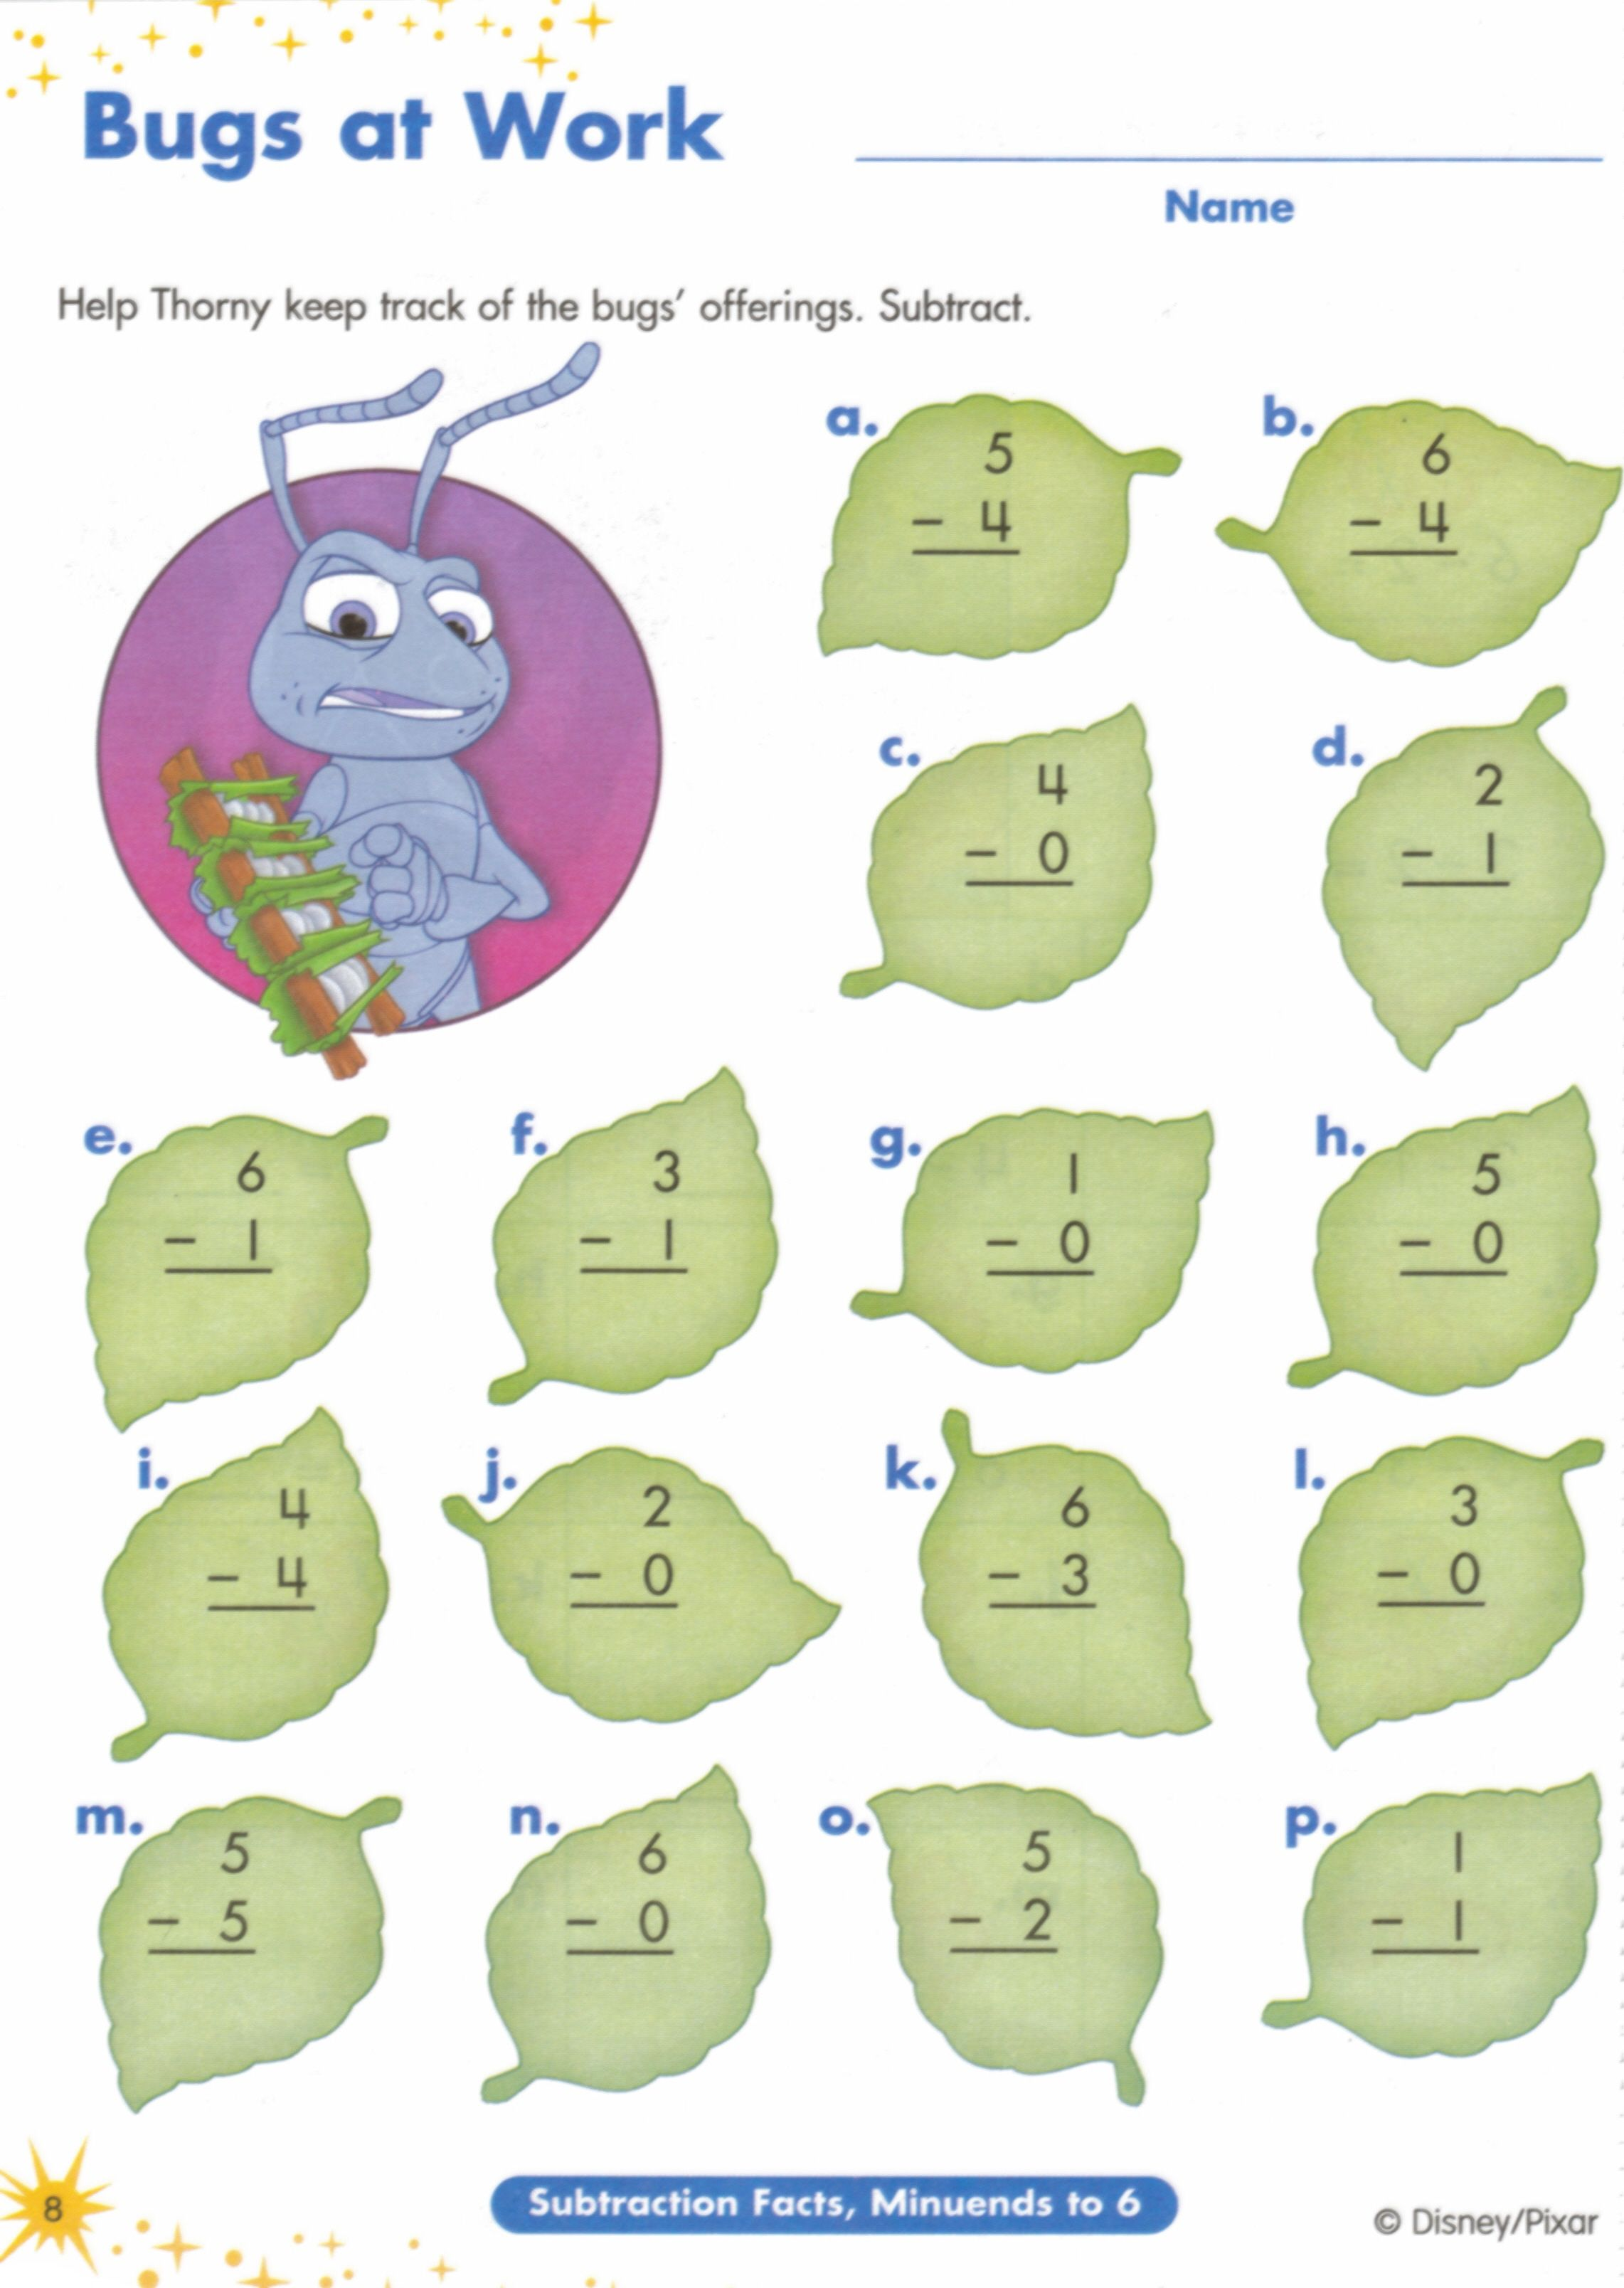 Proatmealus  Picturesque  Images About Worksheets On Pinterest  Fun Facts For Kids  With Magnificent  Images About Worksheets On Pinterest  Fun Facts For Kids Earth Day Worksheets And Jungles With Astounding Solving Equations By Adding Or Subtracting Worksheets Also Nonfiction Text Features Scavenger Hunt Worksheet In Addition Story Sequence Worksheet And Cause And Effect Worksheet Nd Grade As Well As General Chemistry Worksheets Additionally Th Grade Integers Worksheets From Pinterestcom With Proatmealus  Magnificent  Images About Worksheets On Pinterest  Fun Facts For Kids  With Astounding  Images About Worksheets On Pinterest  Fun Facts For Kids Earth Day Worksheets And Jungles And Picturesque Solving Equations By Adding Or Subtracting Worksheets Also Nonfiction Text Features Scavenger Hunt Worksheet In Addition Story Sequence Worksheet From Pinterestcom